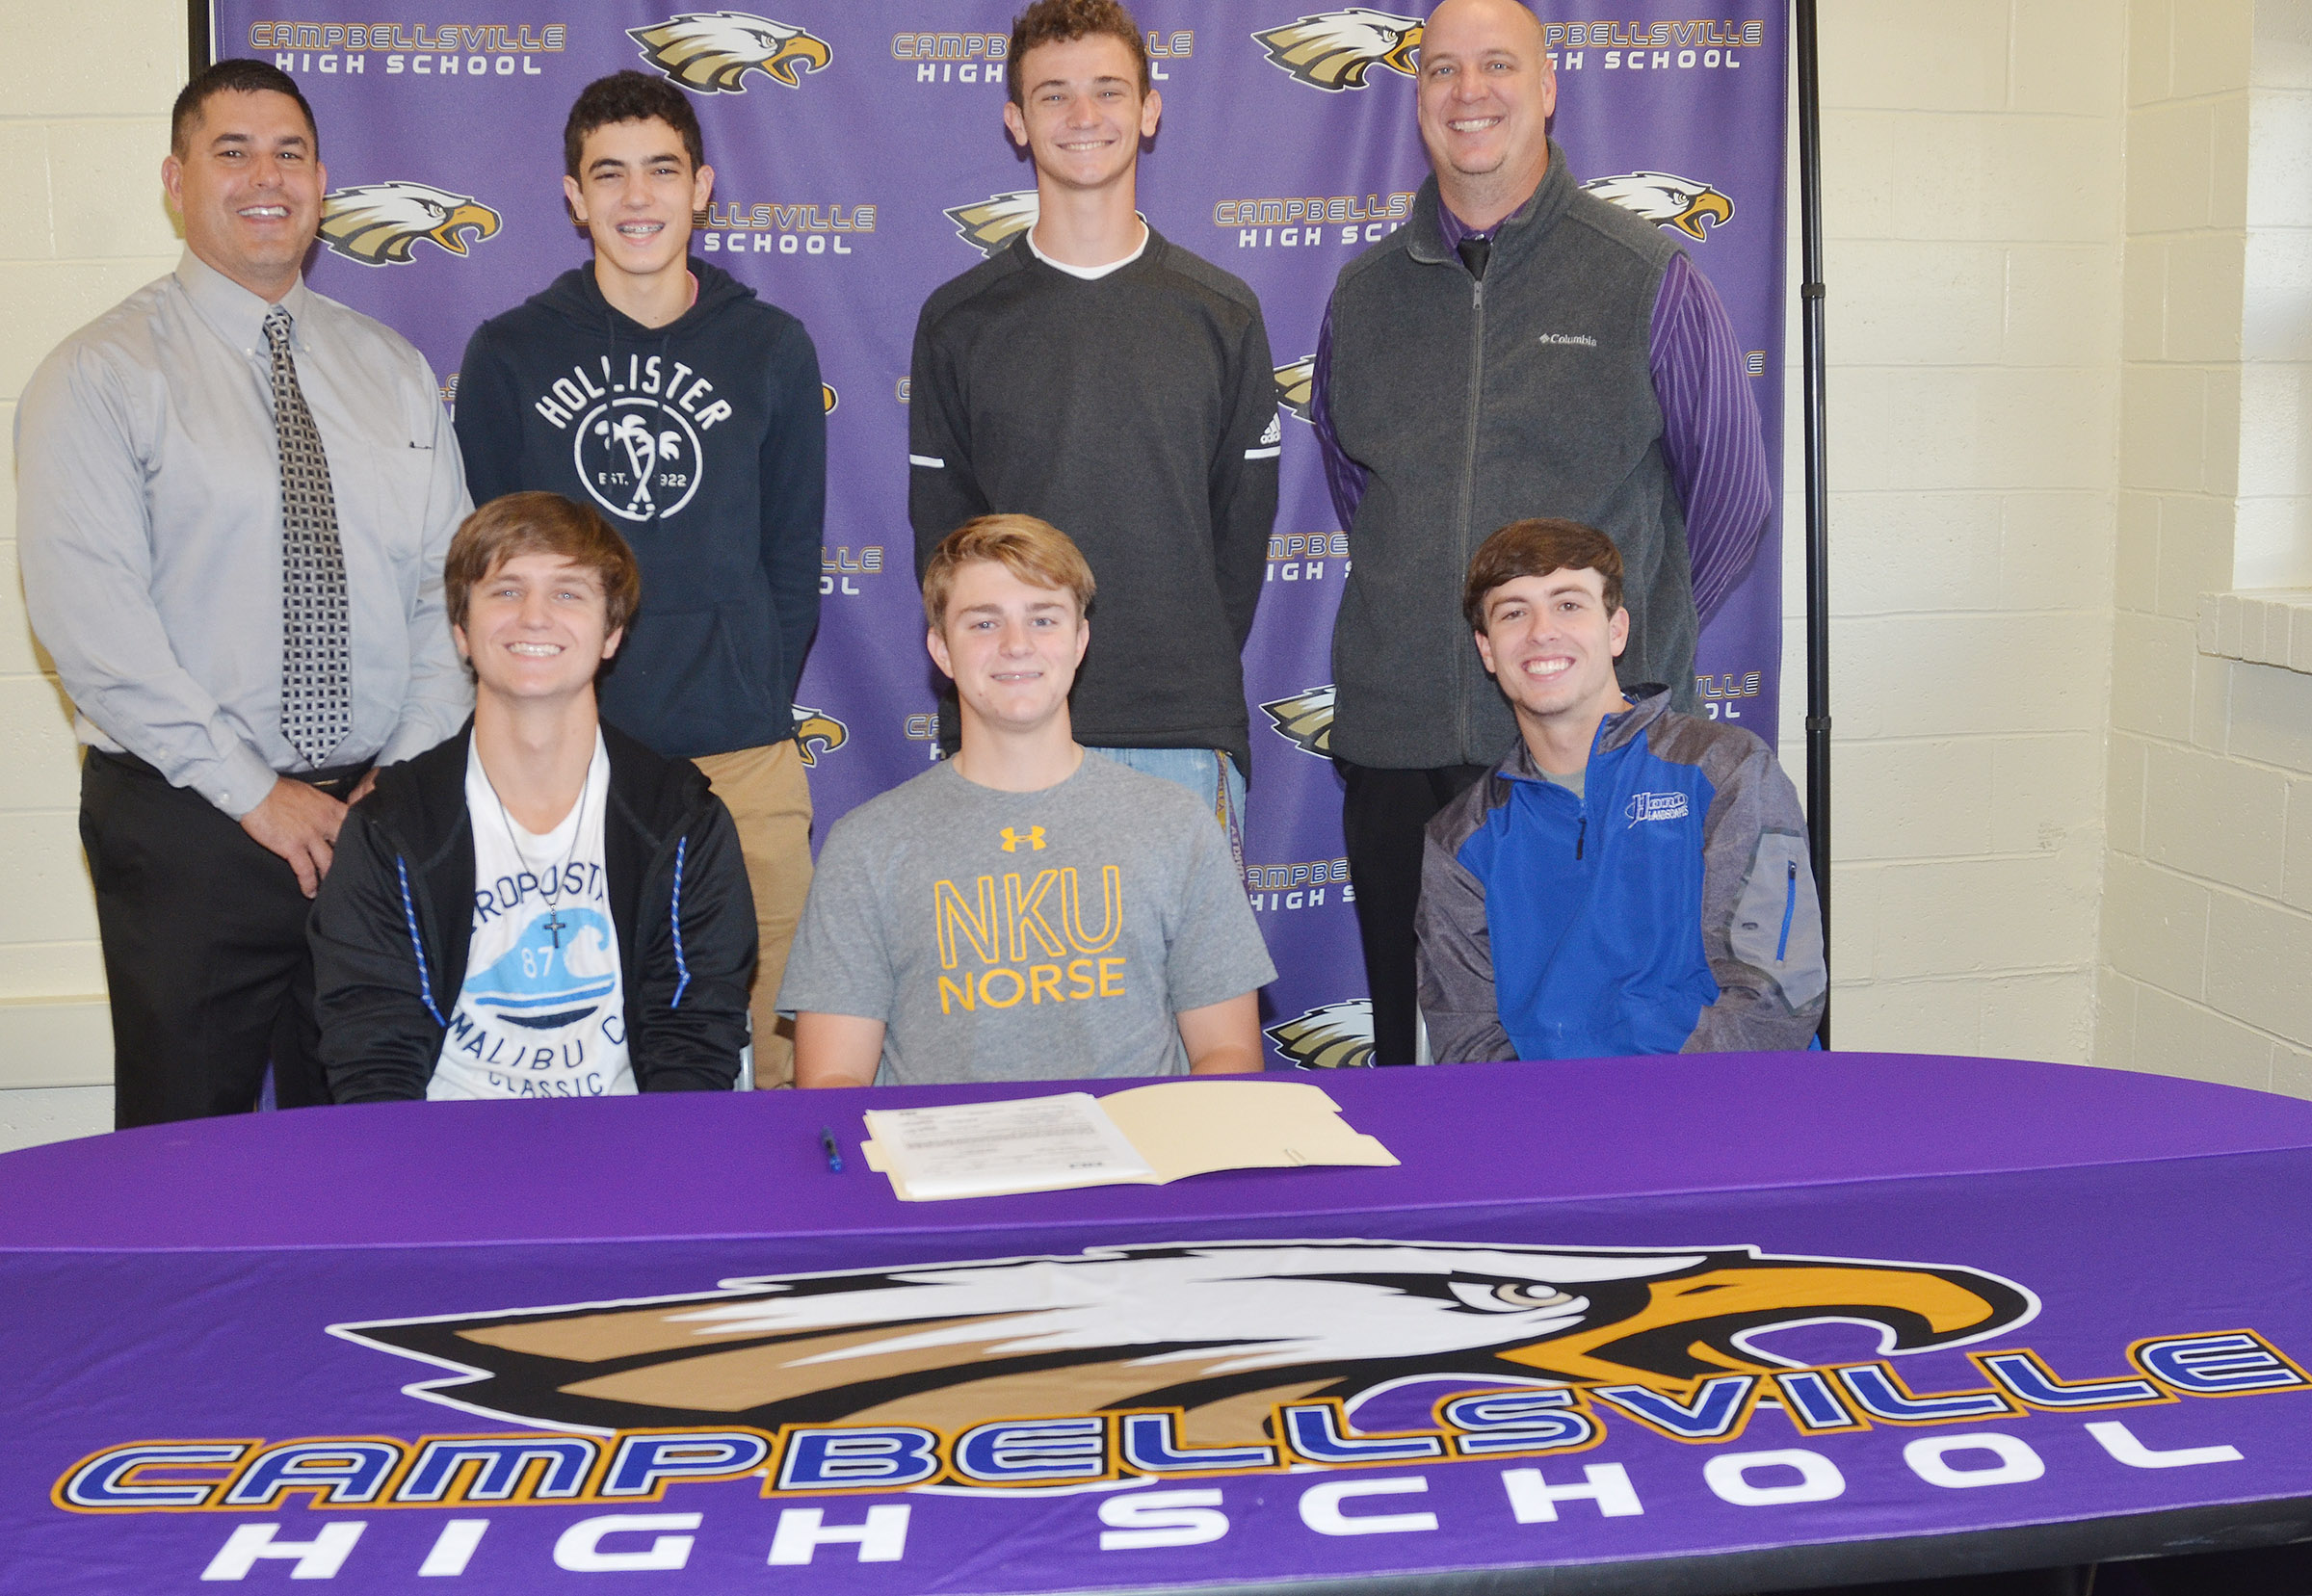 CHS boys' golf player Alex Doss will continue his academic and athletic career at Northern Kentucky University. With Doss, front, center, are his teammates Myles Murrell, at left, and Layton Hord, juniors, and, from left, back, Campbellsville Independent Schools Superintendent Kirby Smith, freshman Kameron Smith, senior Connor Wilson and CHS Principal David Petett.